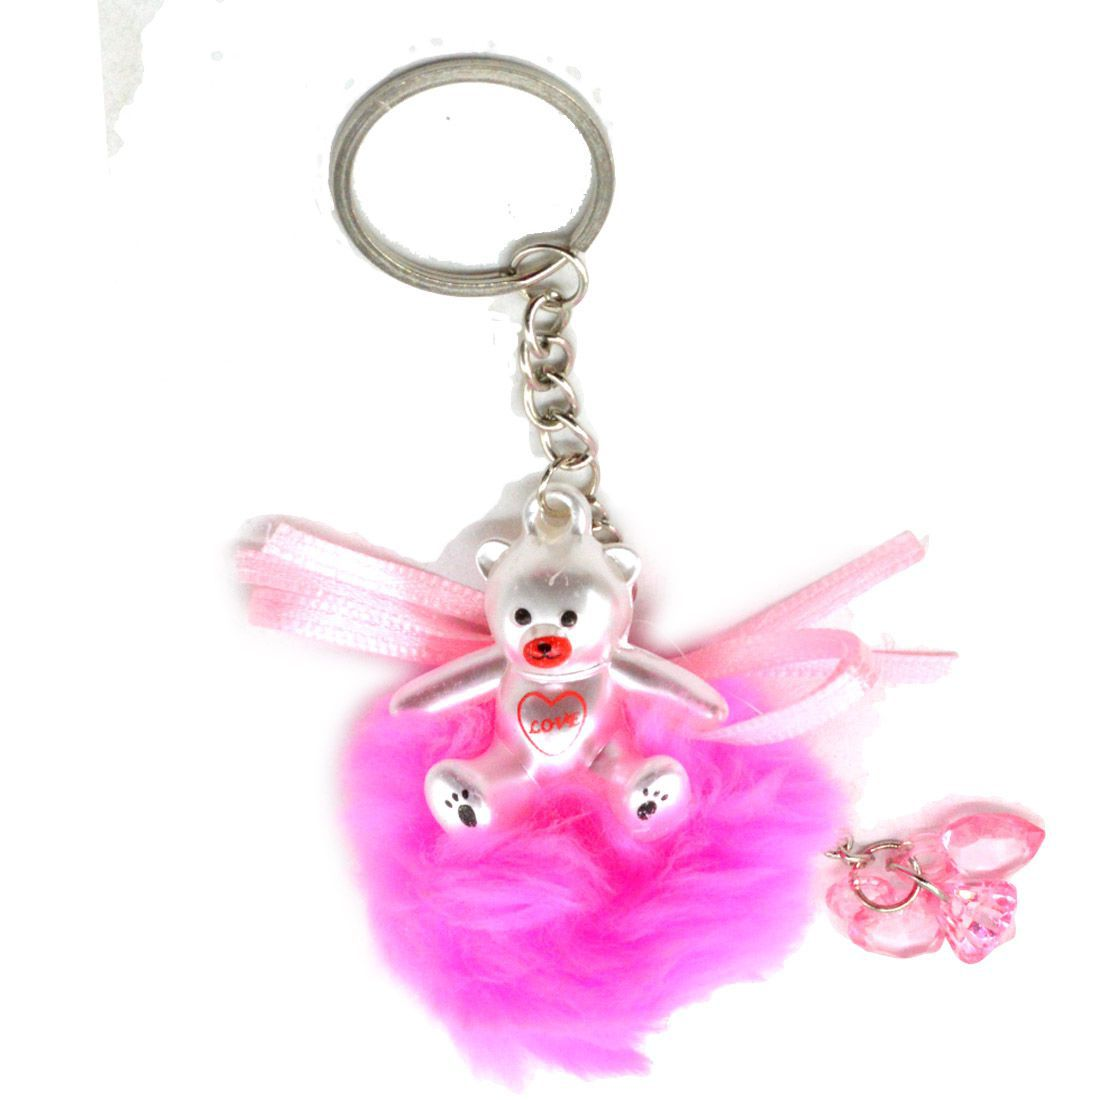 Faynci Love Red Cute Doll Key Chain with Red Twin Heart Shape for Fashion